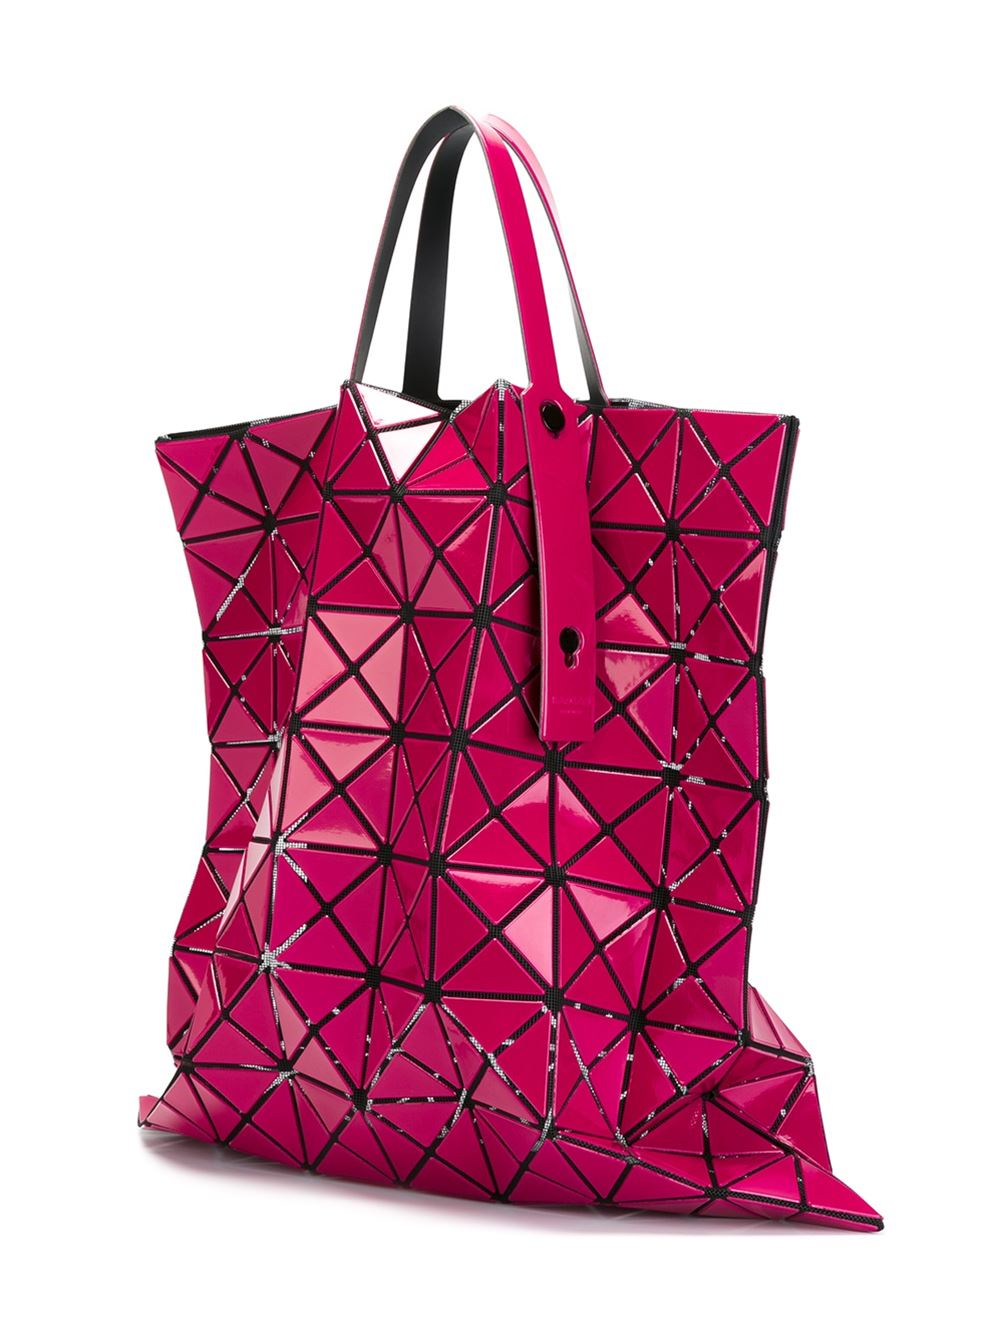 Bao Bao Issey Miyake 'lucent-2' Tote in Pink & Purple (Purple)